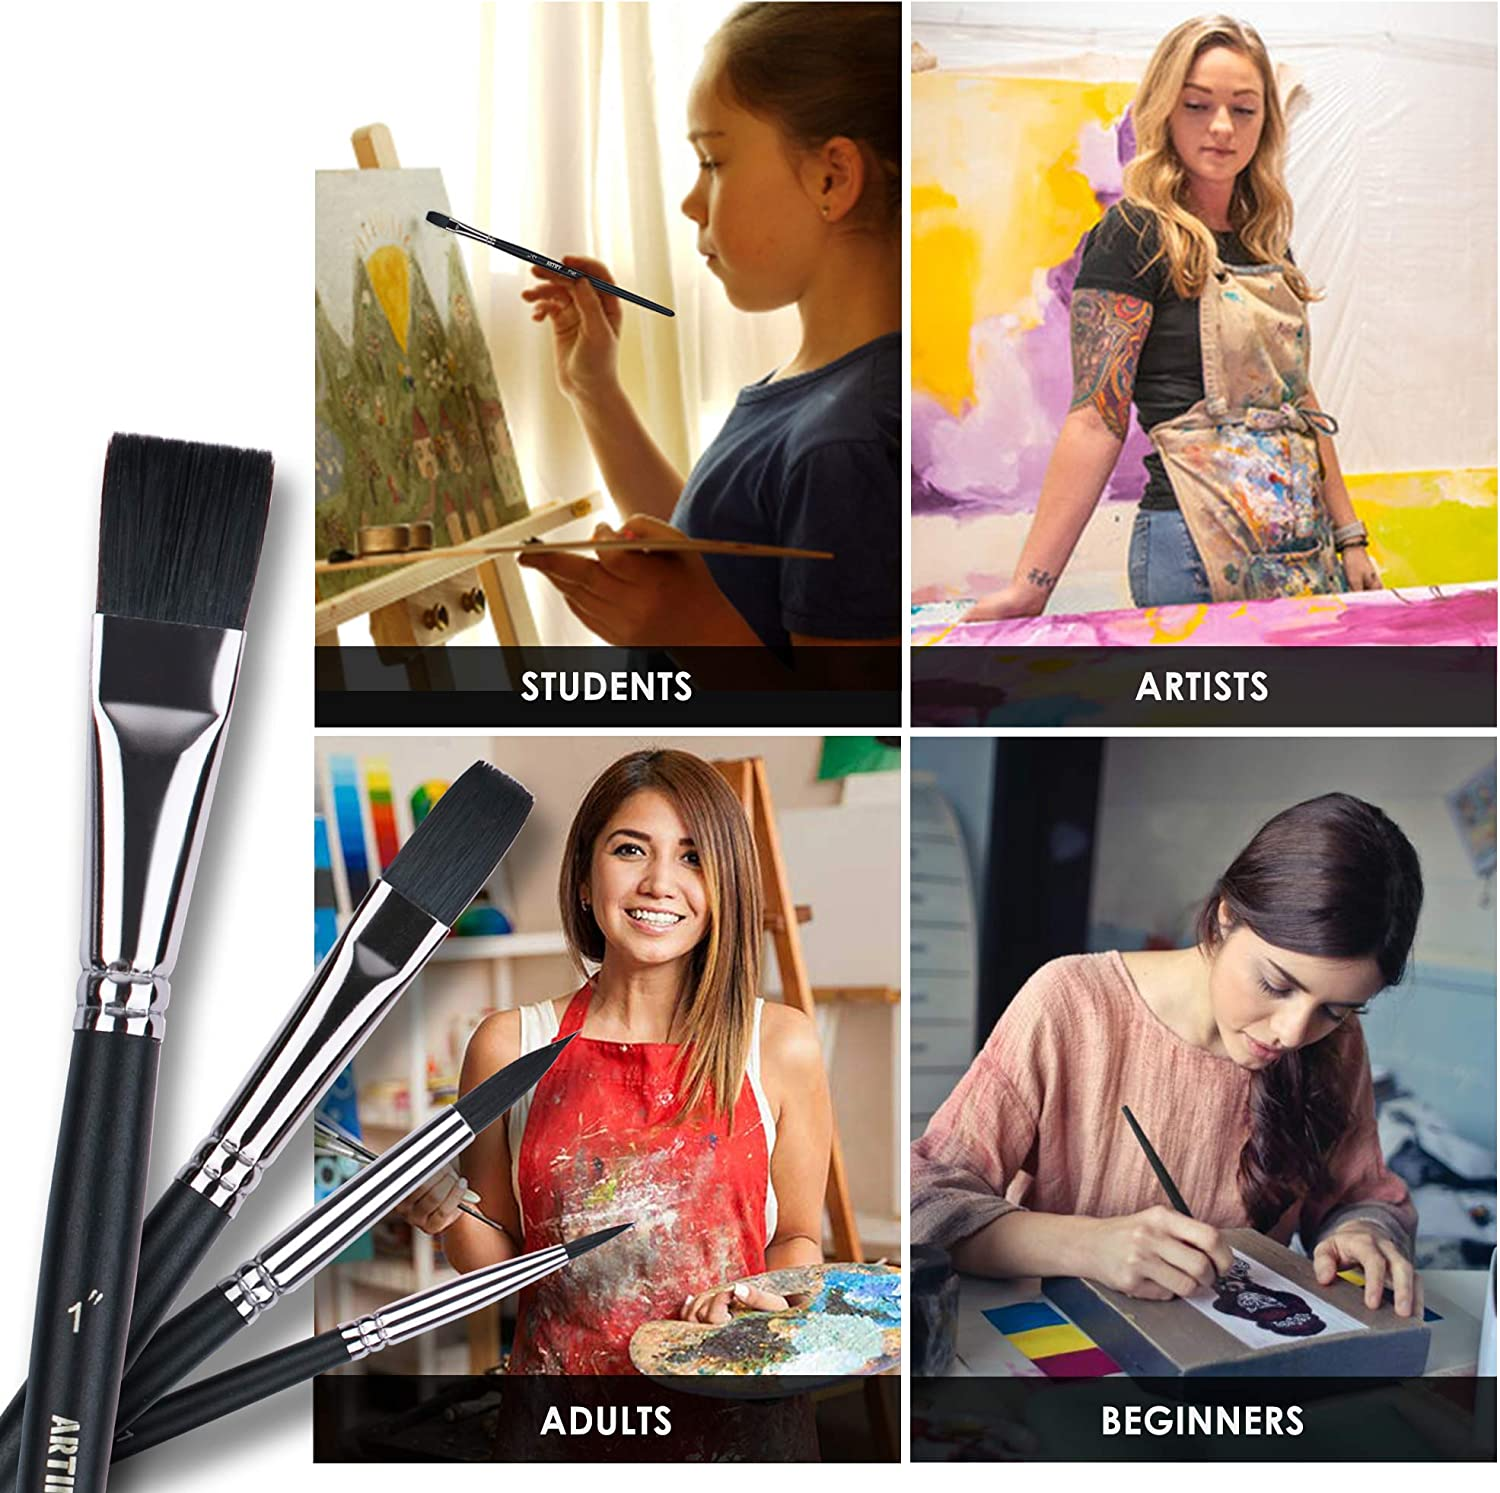 Beginner and Artist ARTIFY 12 pcs Watercolor Painting Brush Set Nylon Hair Paint Brushes for Oil Painting Acrylic Painting for Kids and Adults Black Figger Round Flat Cats Tongue Shape